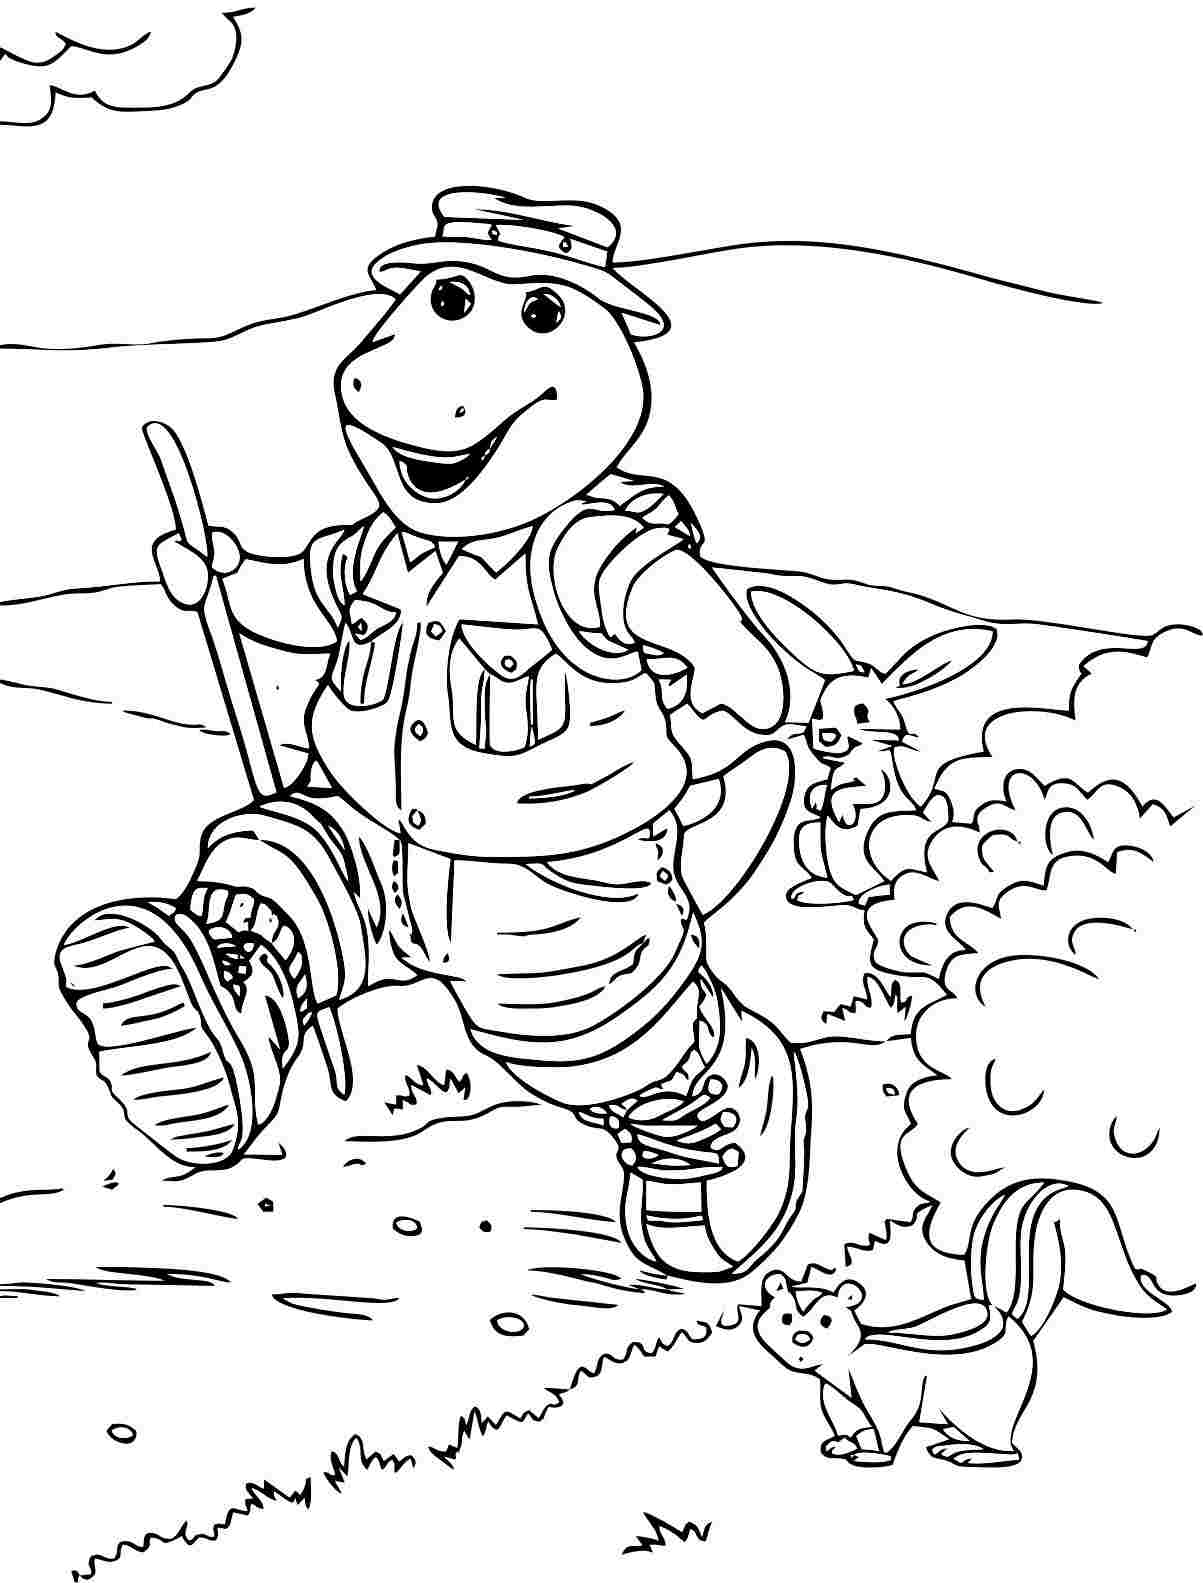 barney coloring barney coloring pages getcoloringpagescom coloring barney